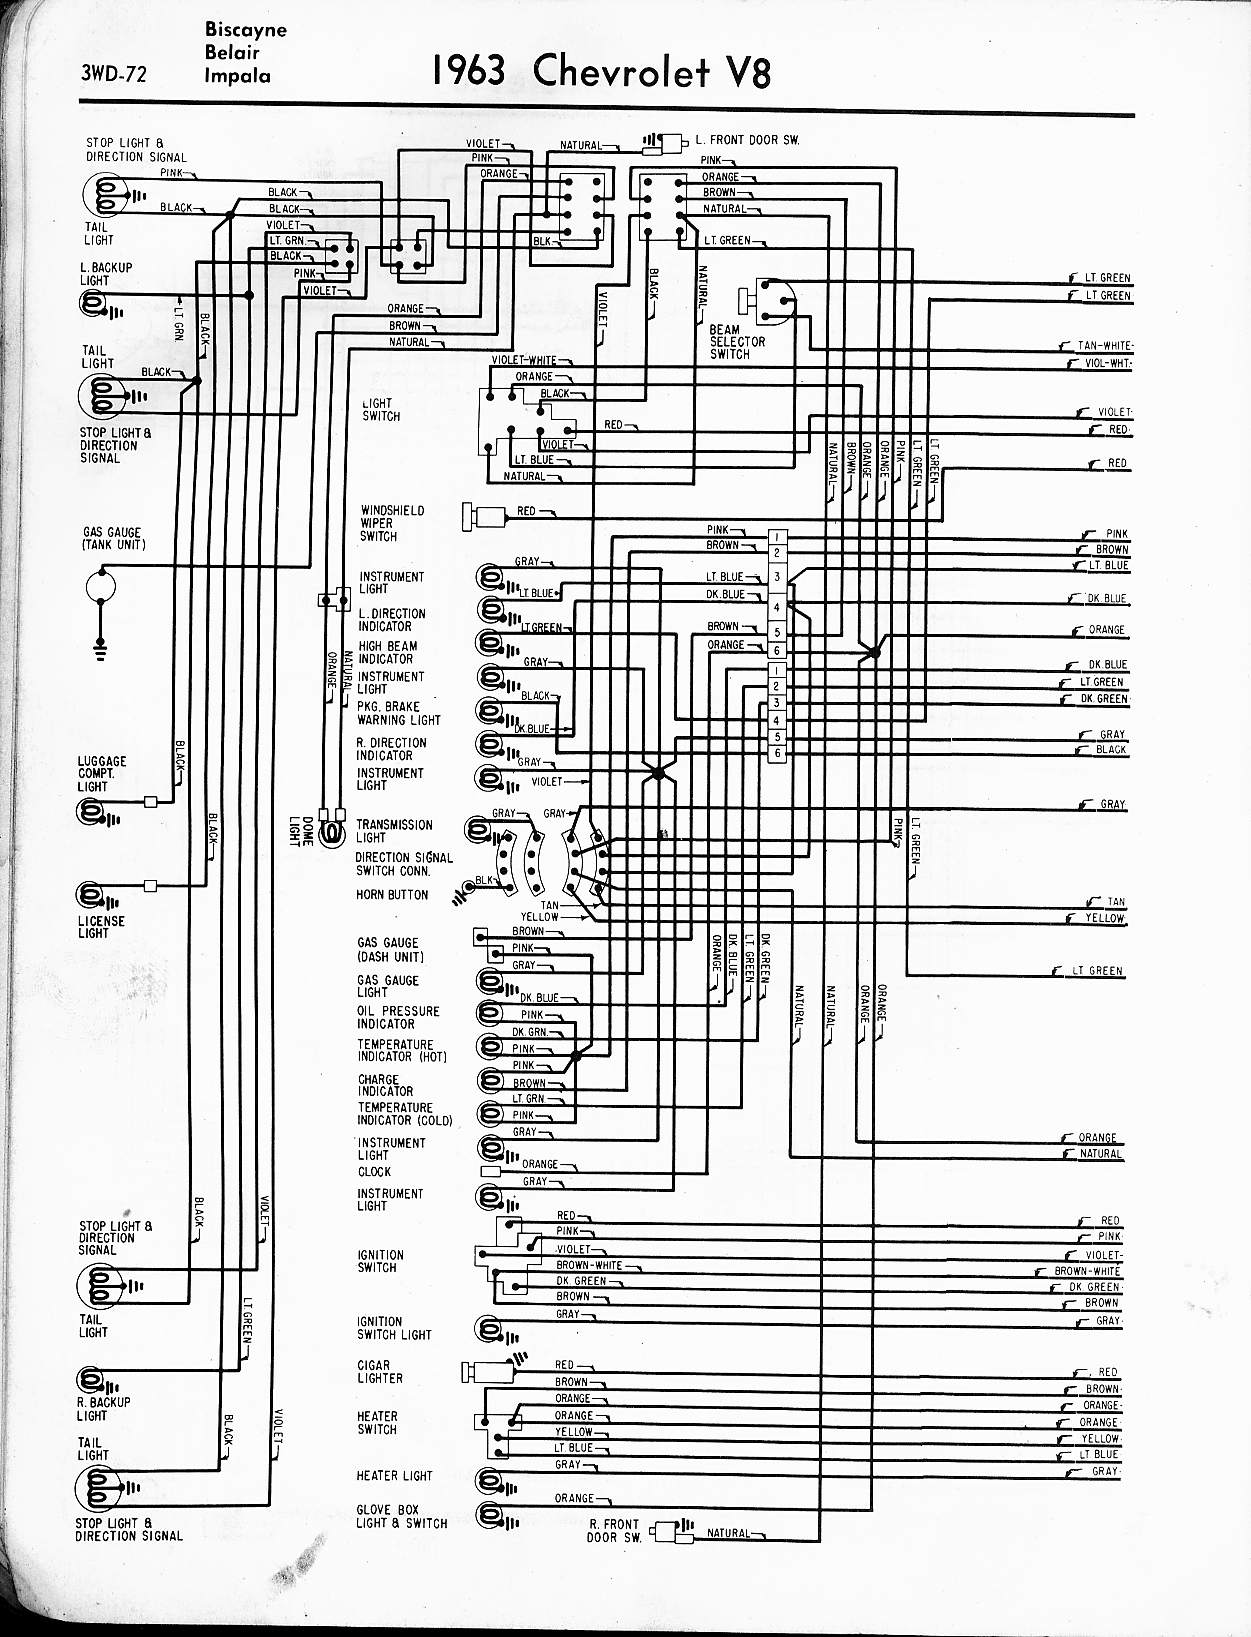 1961 impala ignition switch wiring diagram